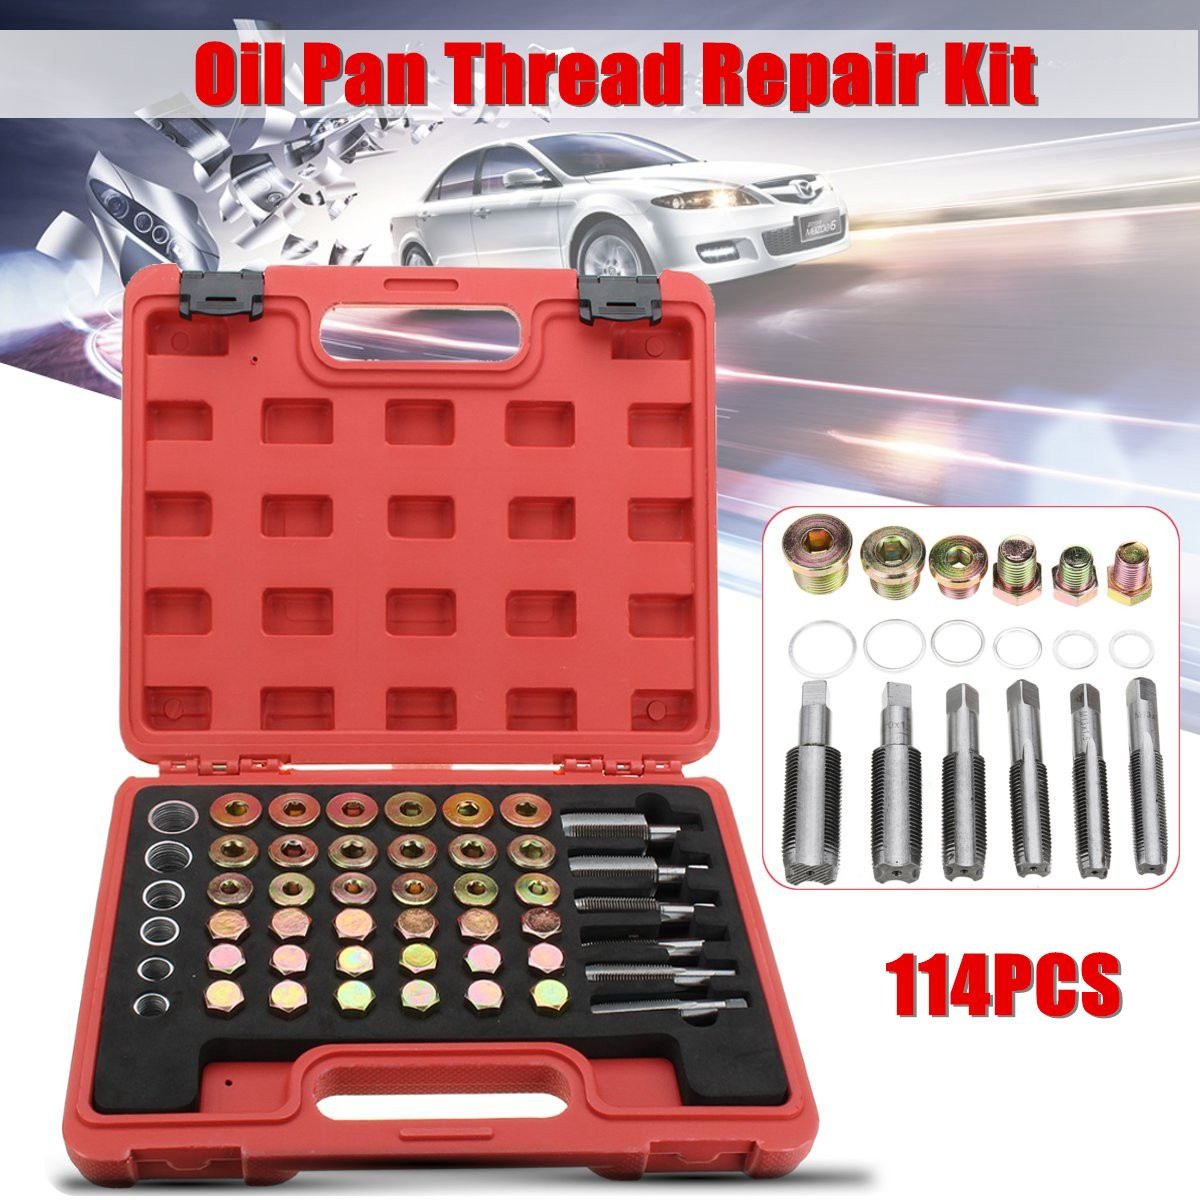 114PCS Car Oil Pan Thread Repair Kit Gearbox Drain Plug Washer Seal Tool Set цена